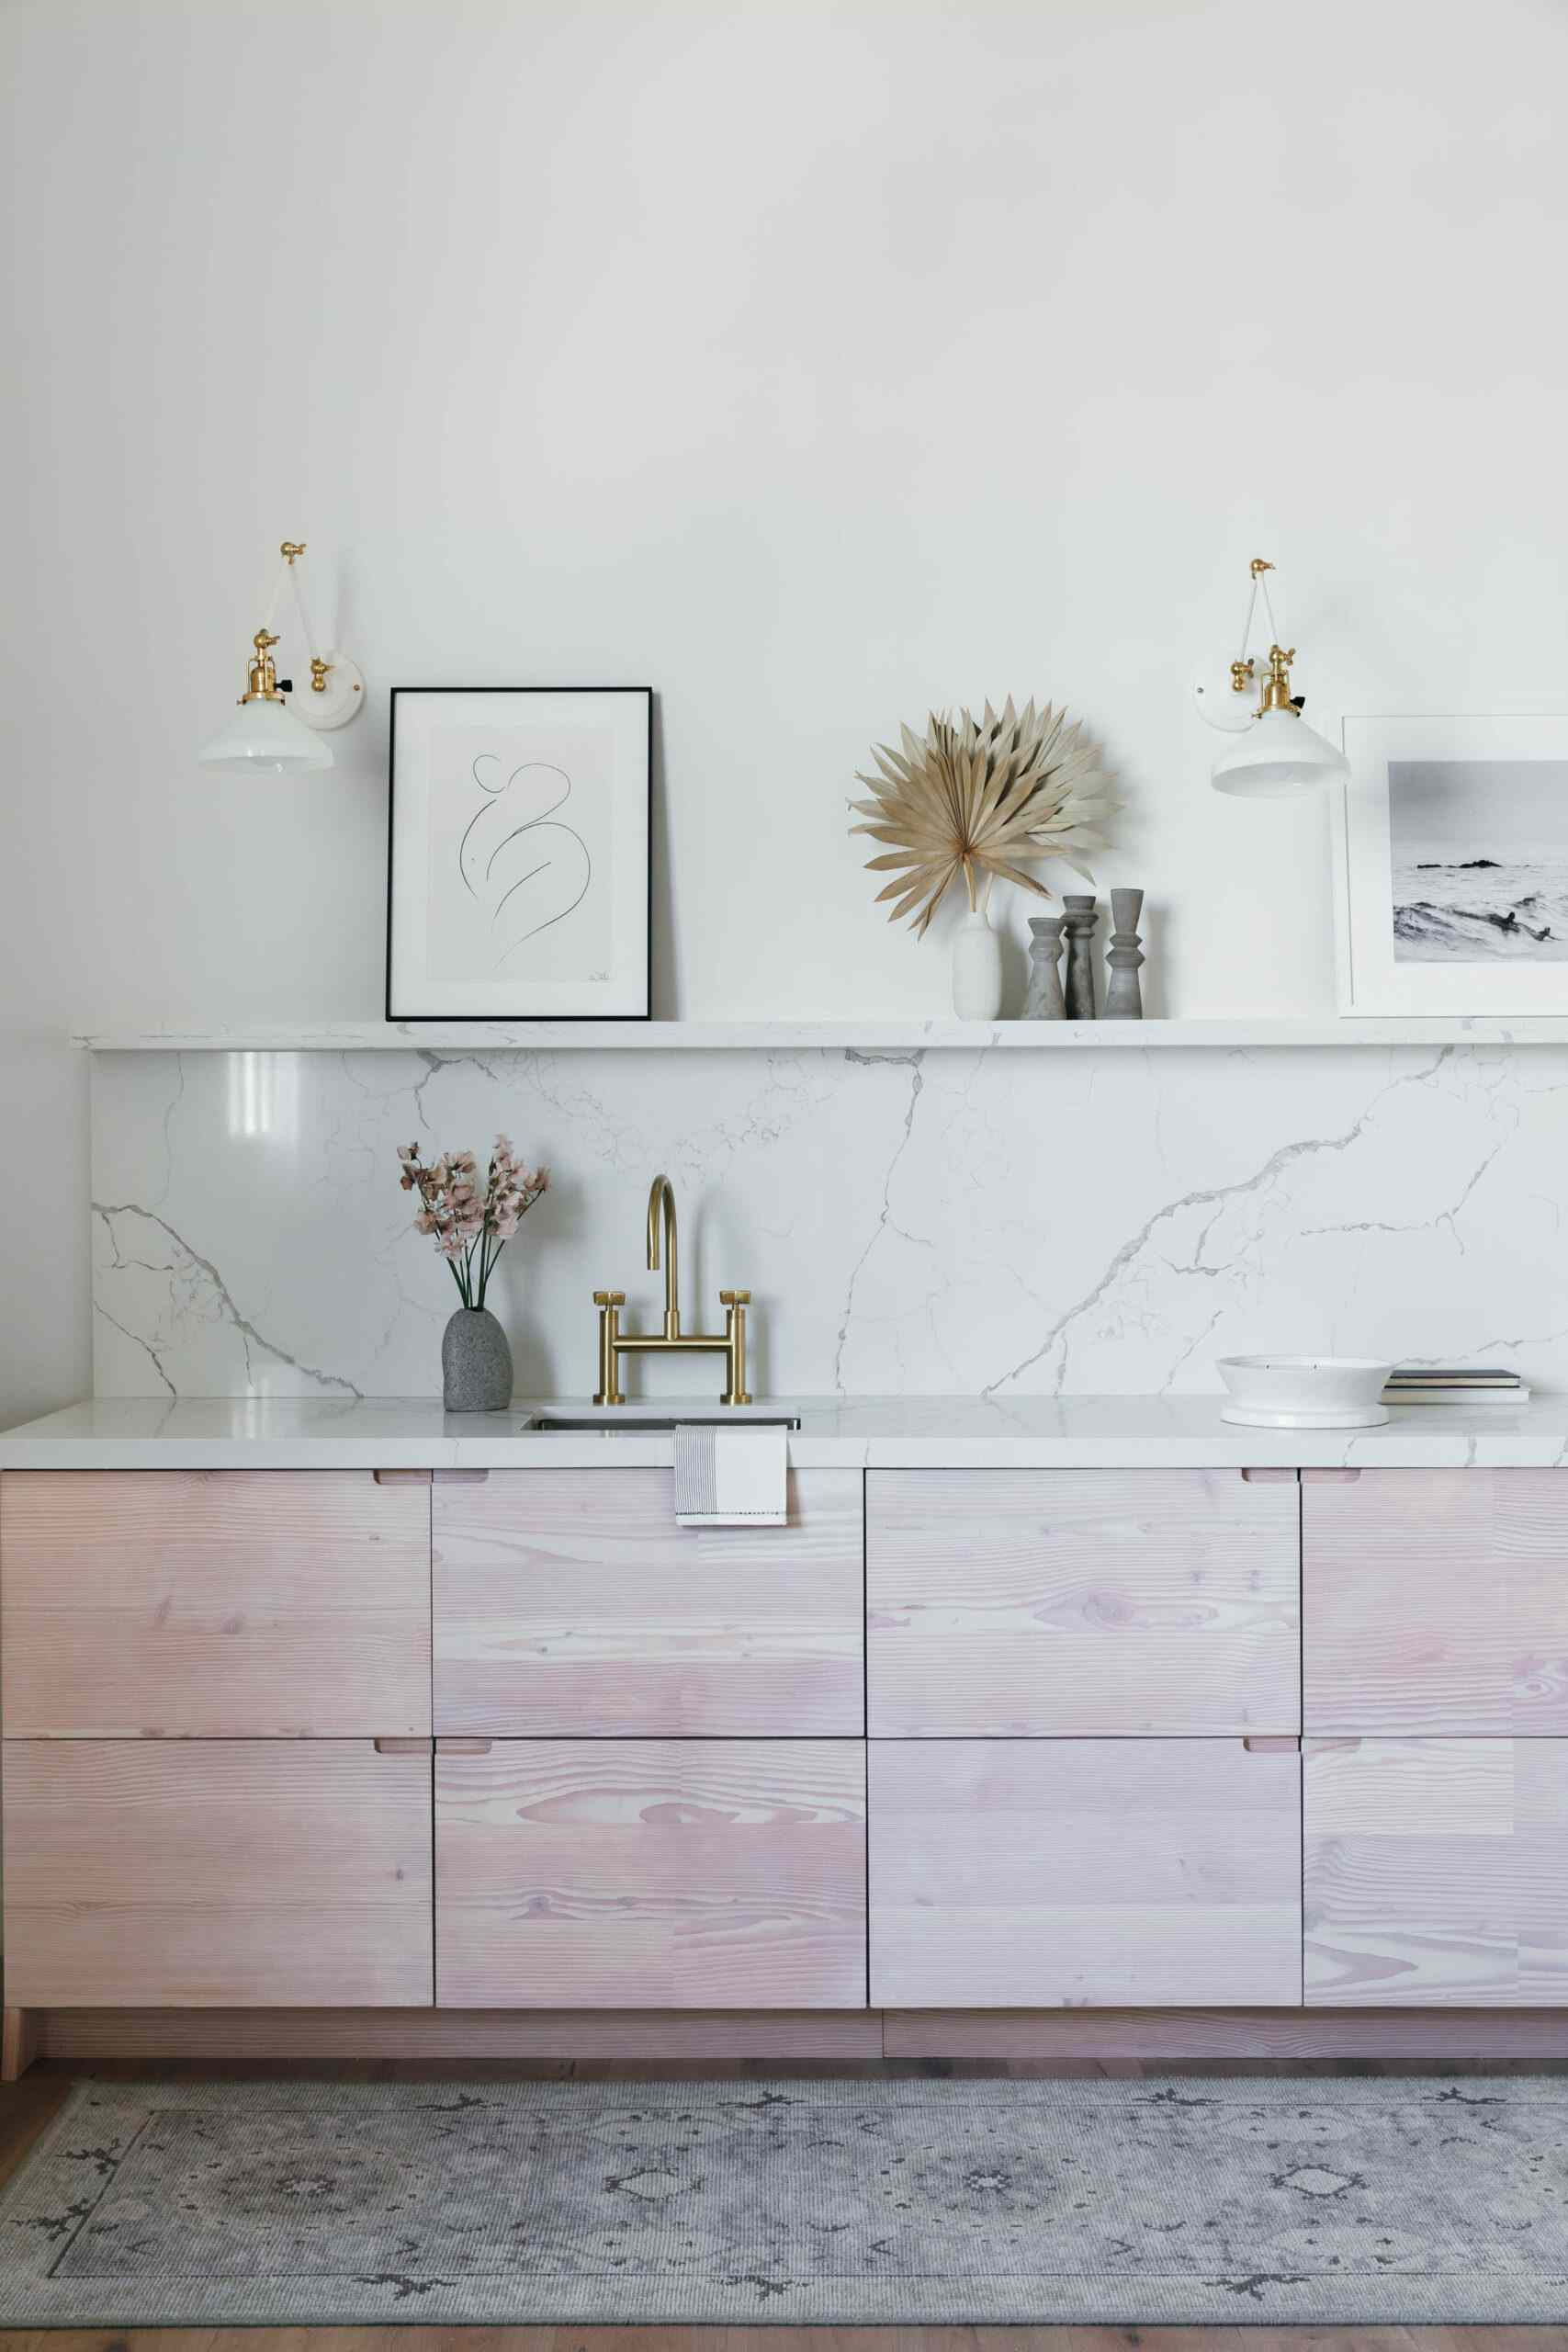 All white kitchen with marble-look counter and backsplash